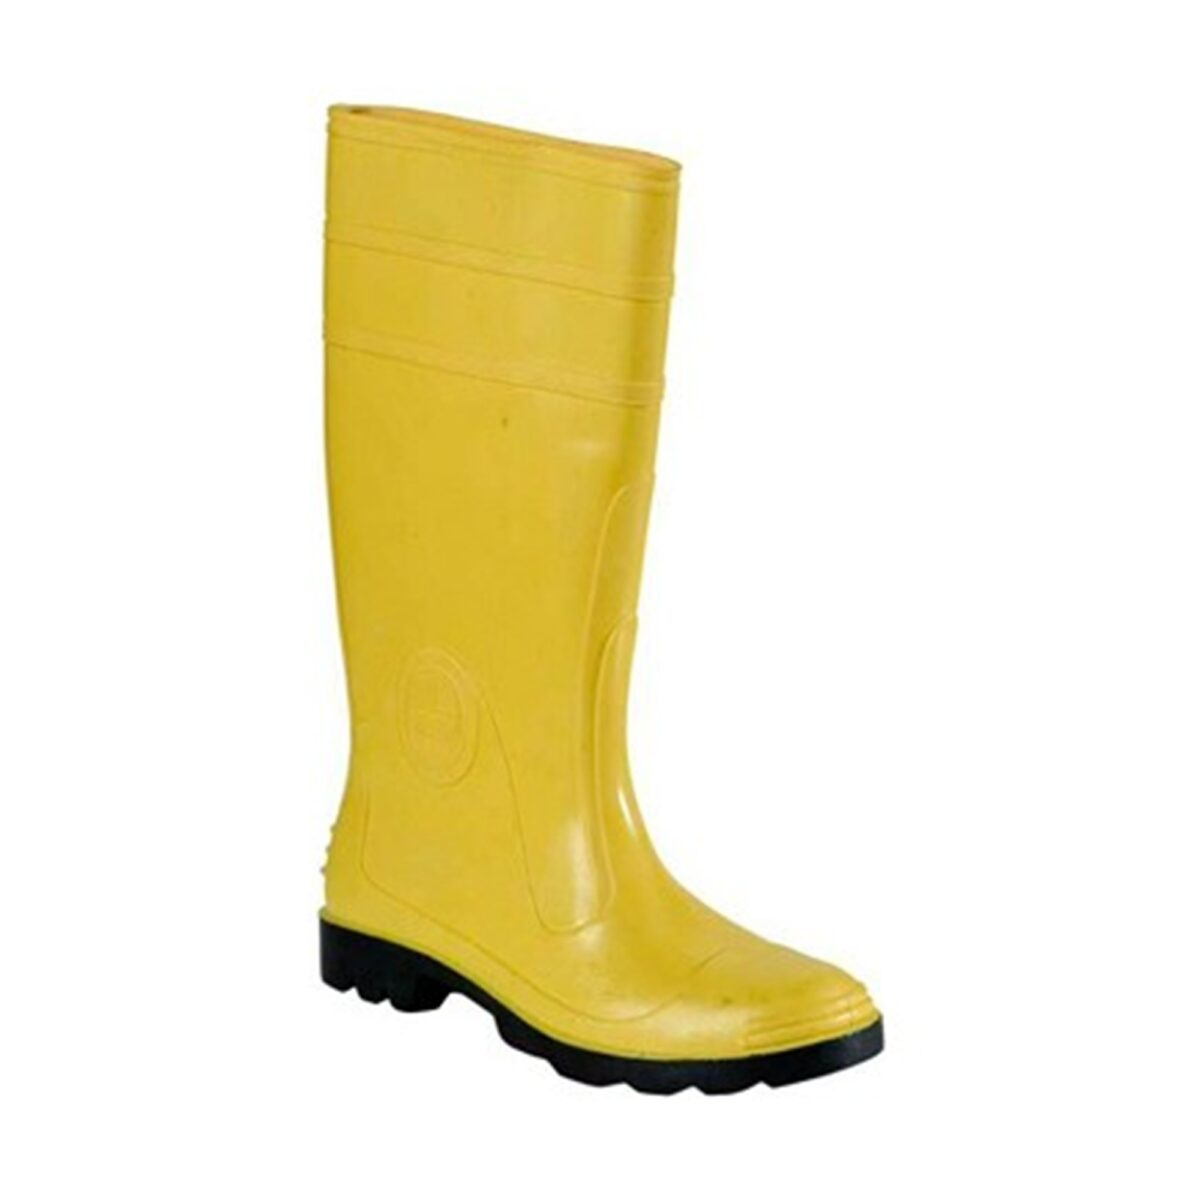 YELLOW TRAVELING BOOTS MEN